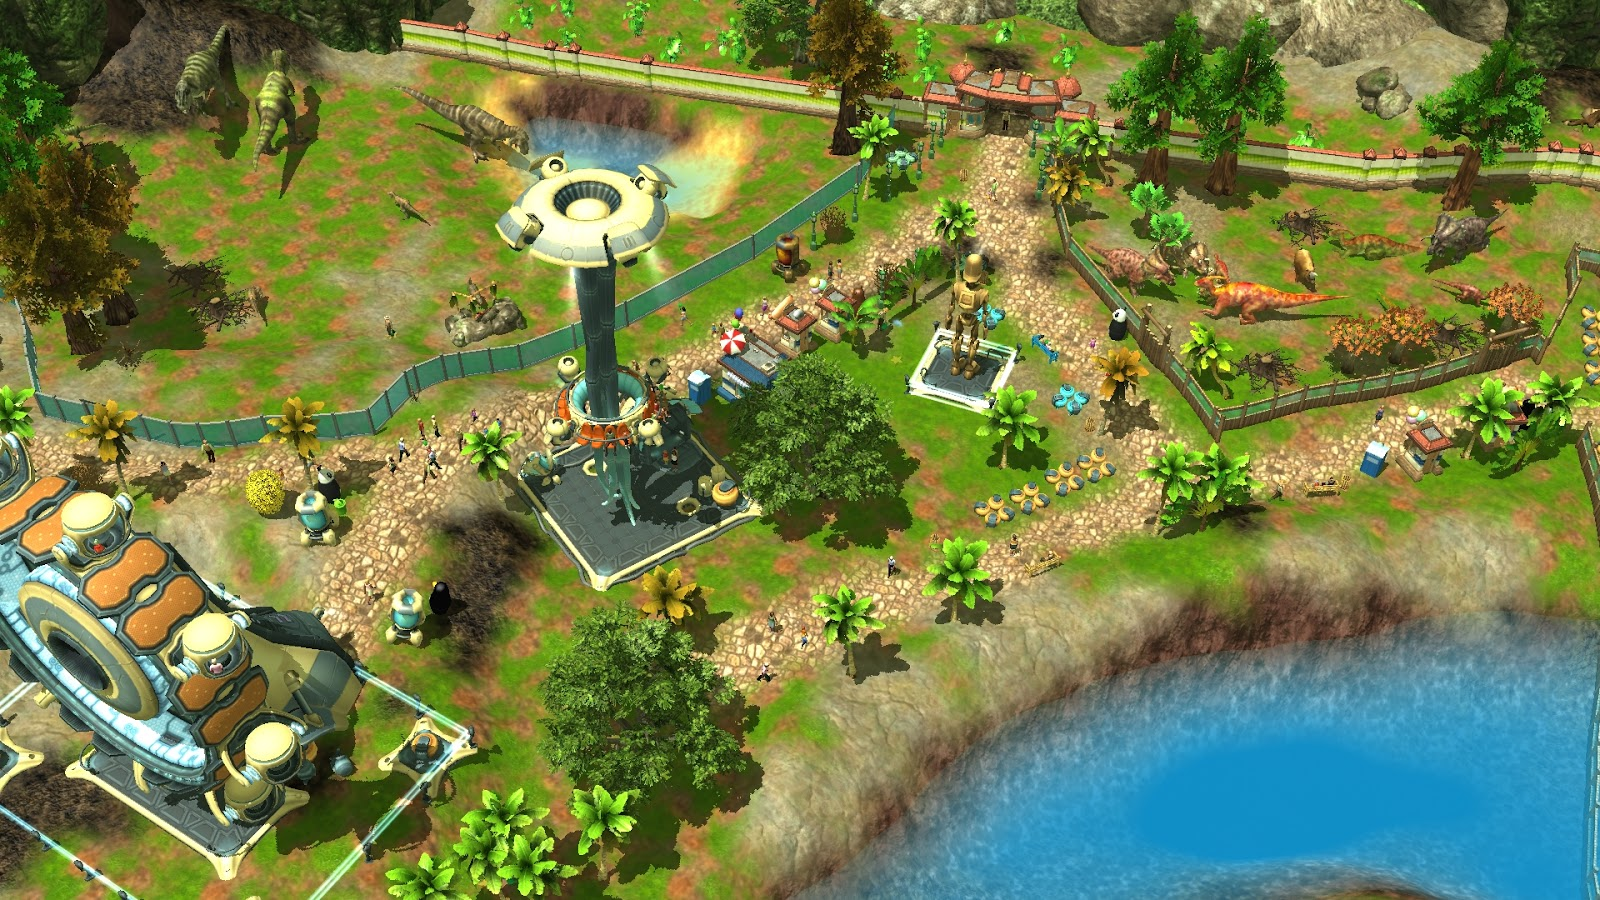 wildlife park 3 free download